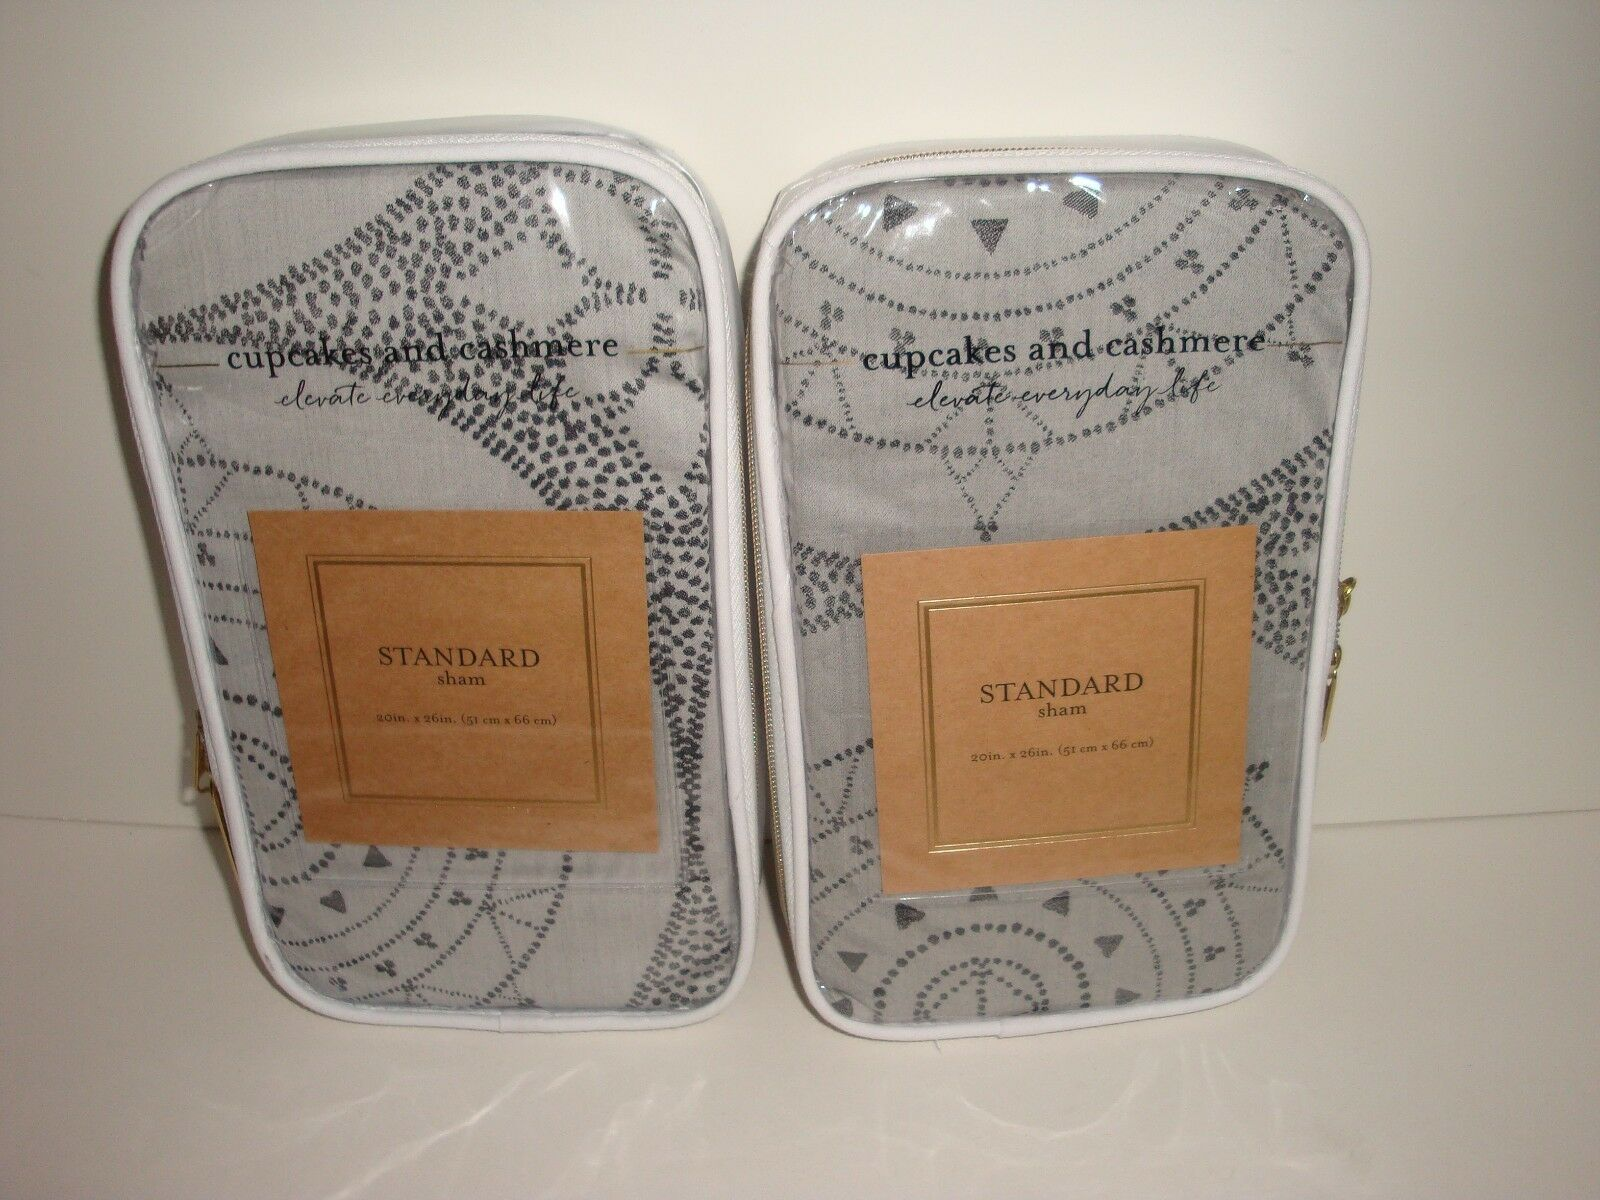 Cupcakes and Cashmere S 2 Dotted Medallion Standard Shams NIP Grey